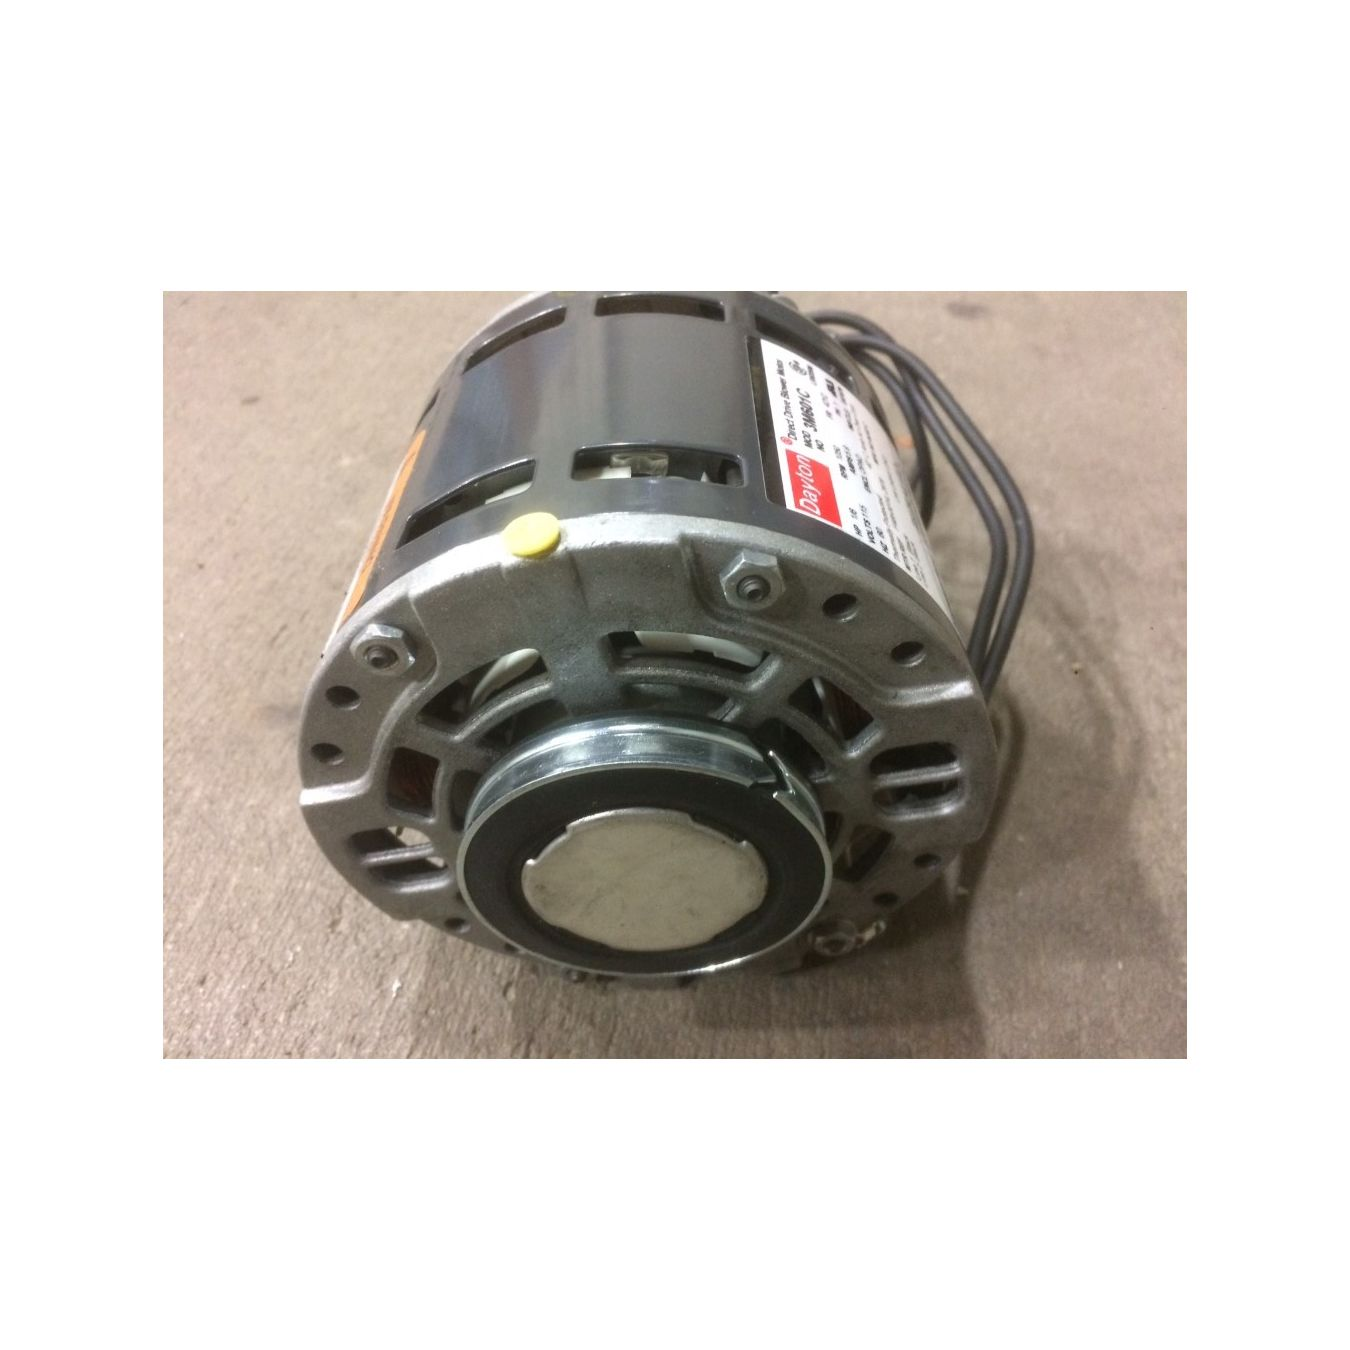 Direct Drive Blowers Product : Hp dayton m c direct drive blower motor yz frame